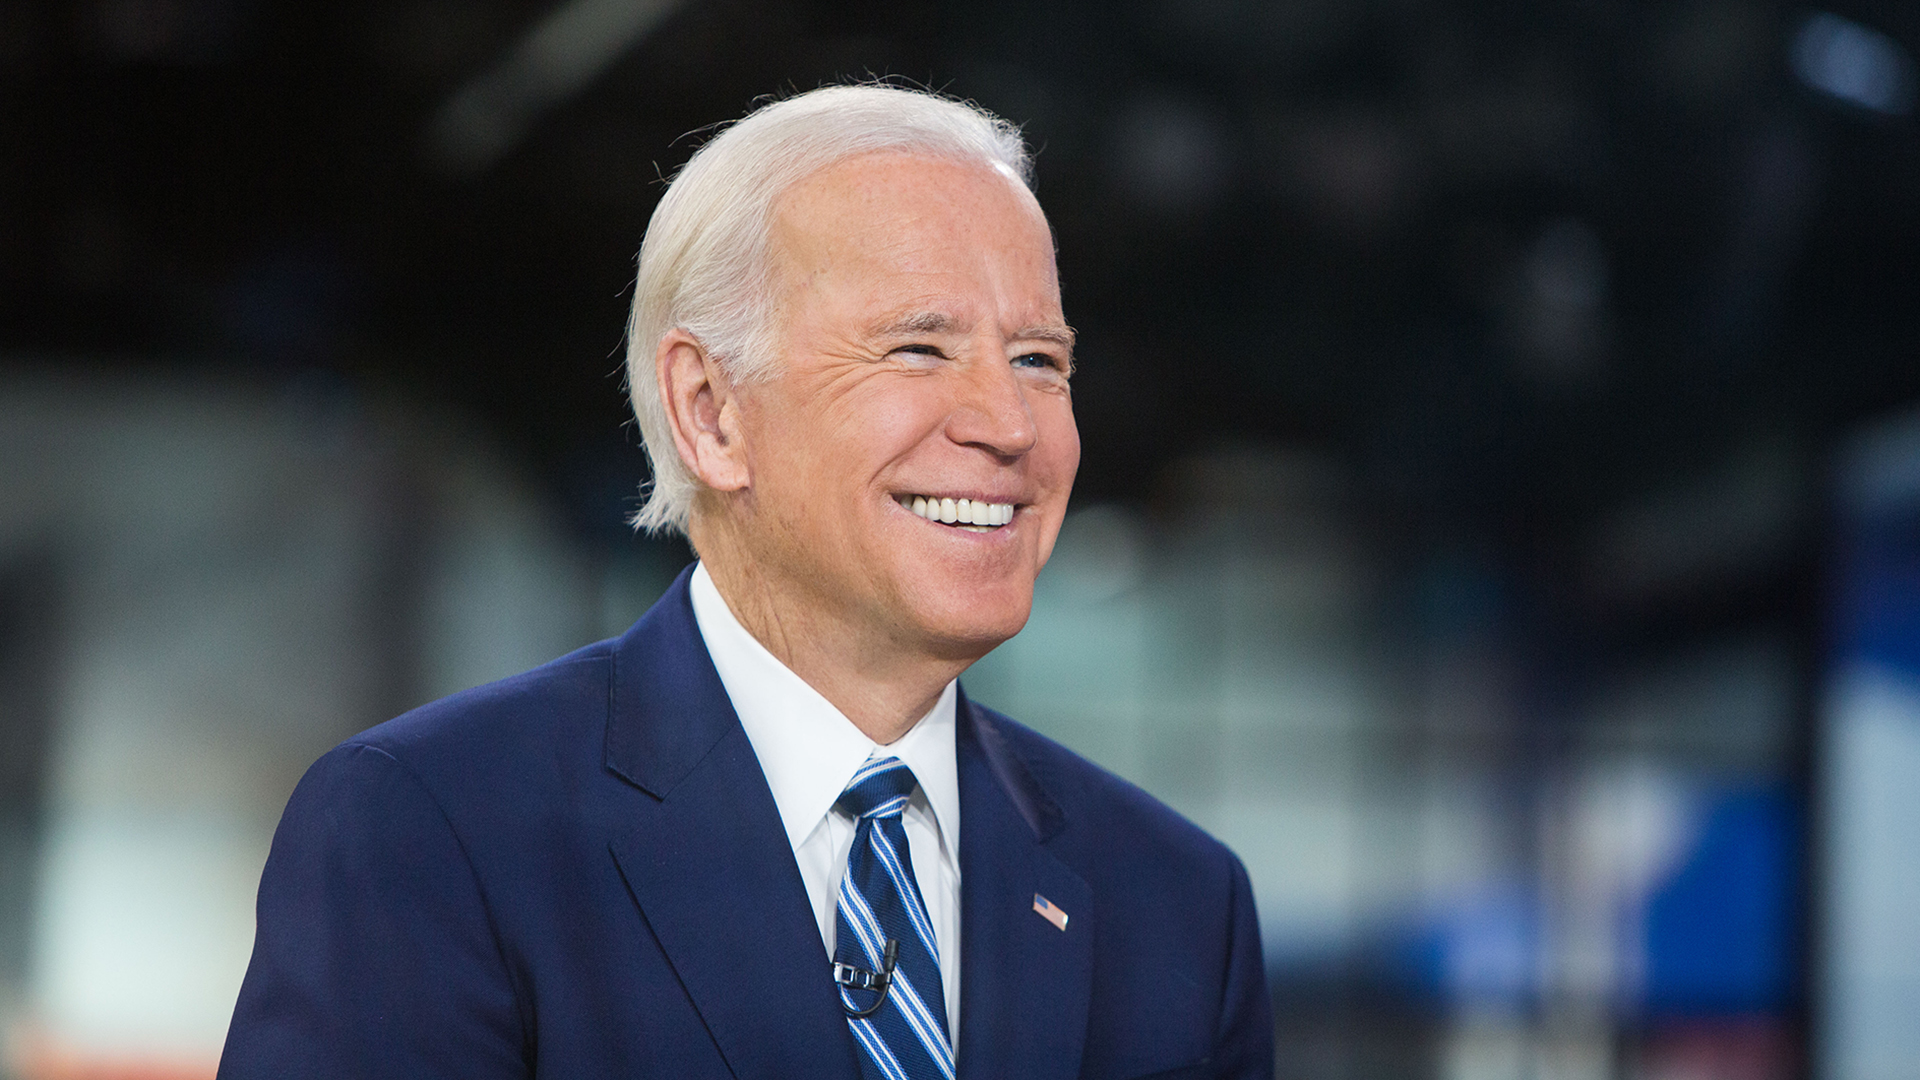 joe biden i m not closing the door on a presidential run in 2020